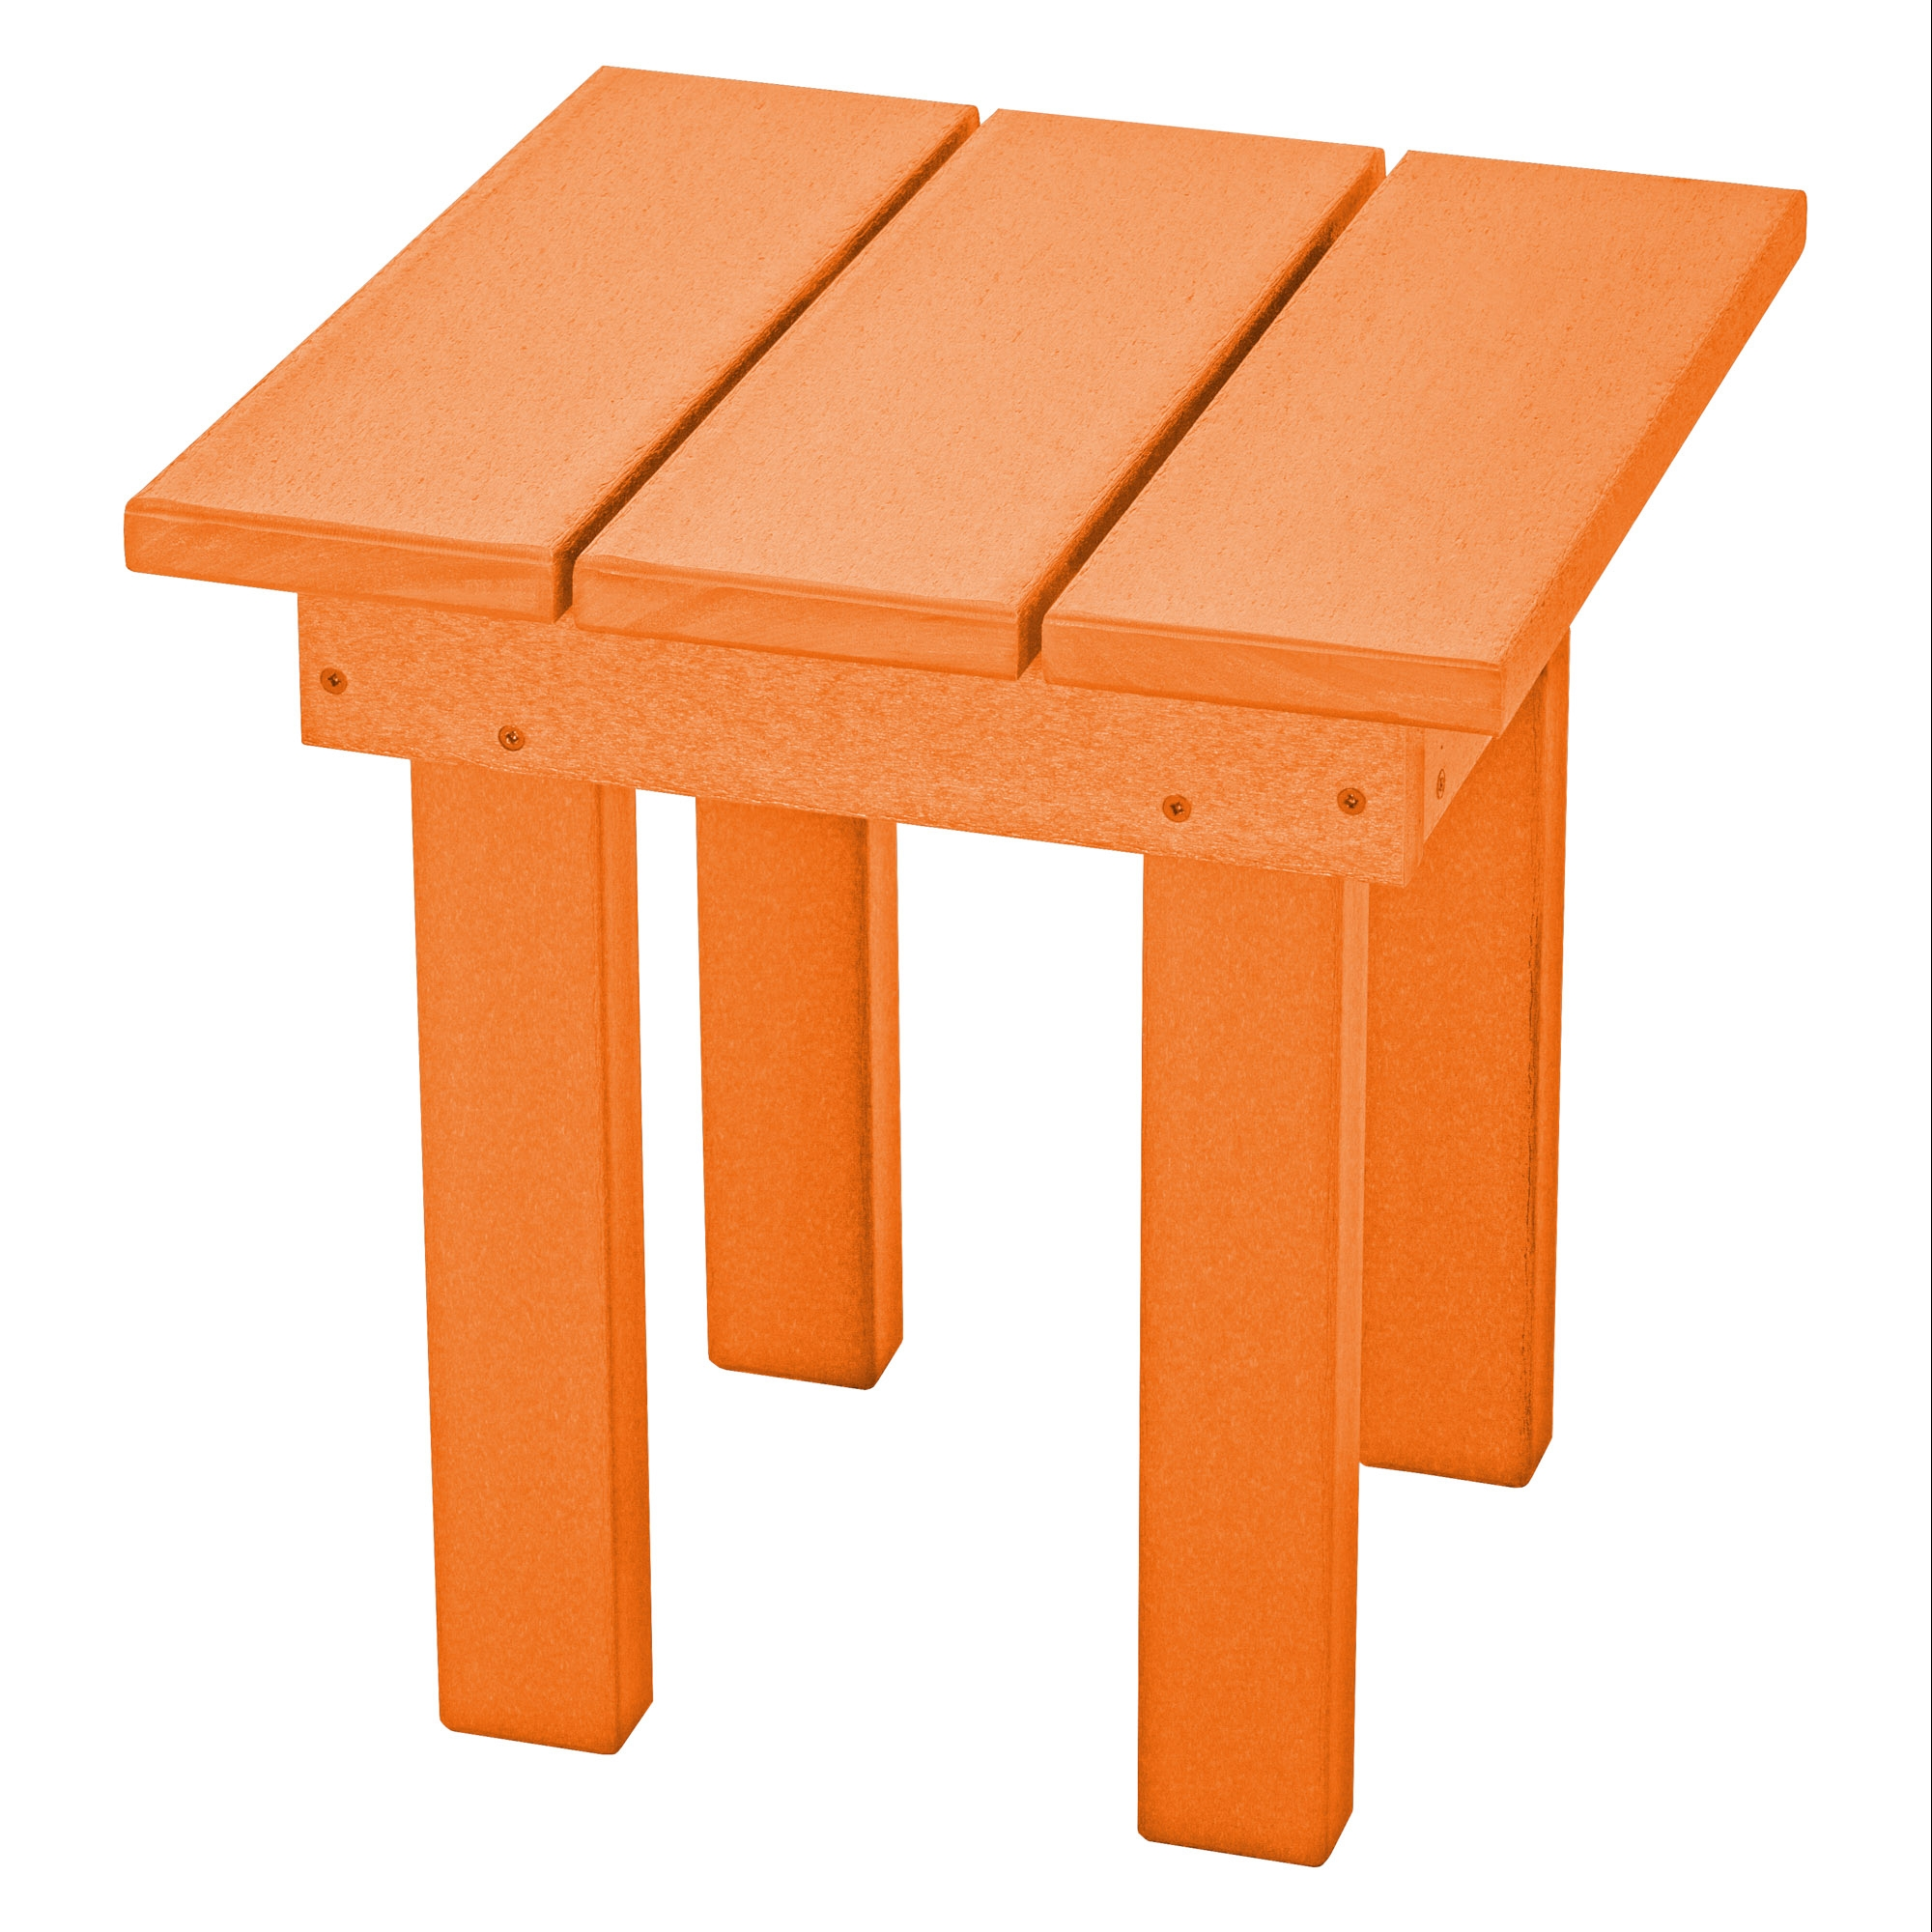 durawood square adirondack side table pawleys island hammocks small orange outdoor lamp design corner furniture pieces rose gold setting ultra tool chest hairpin black kitchen set